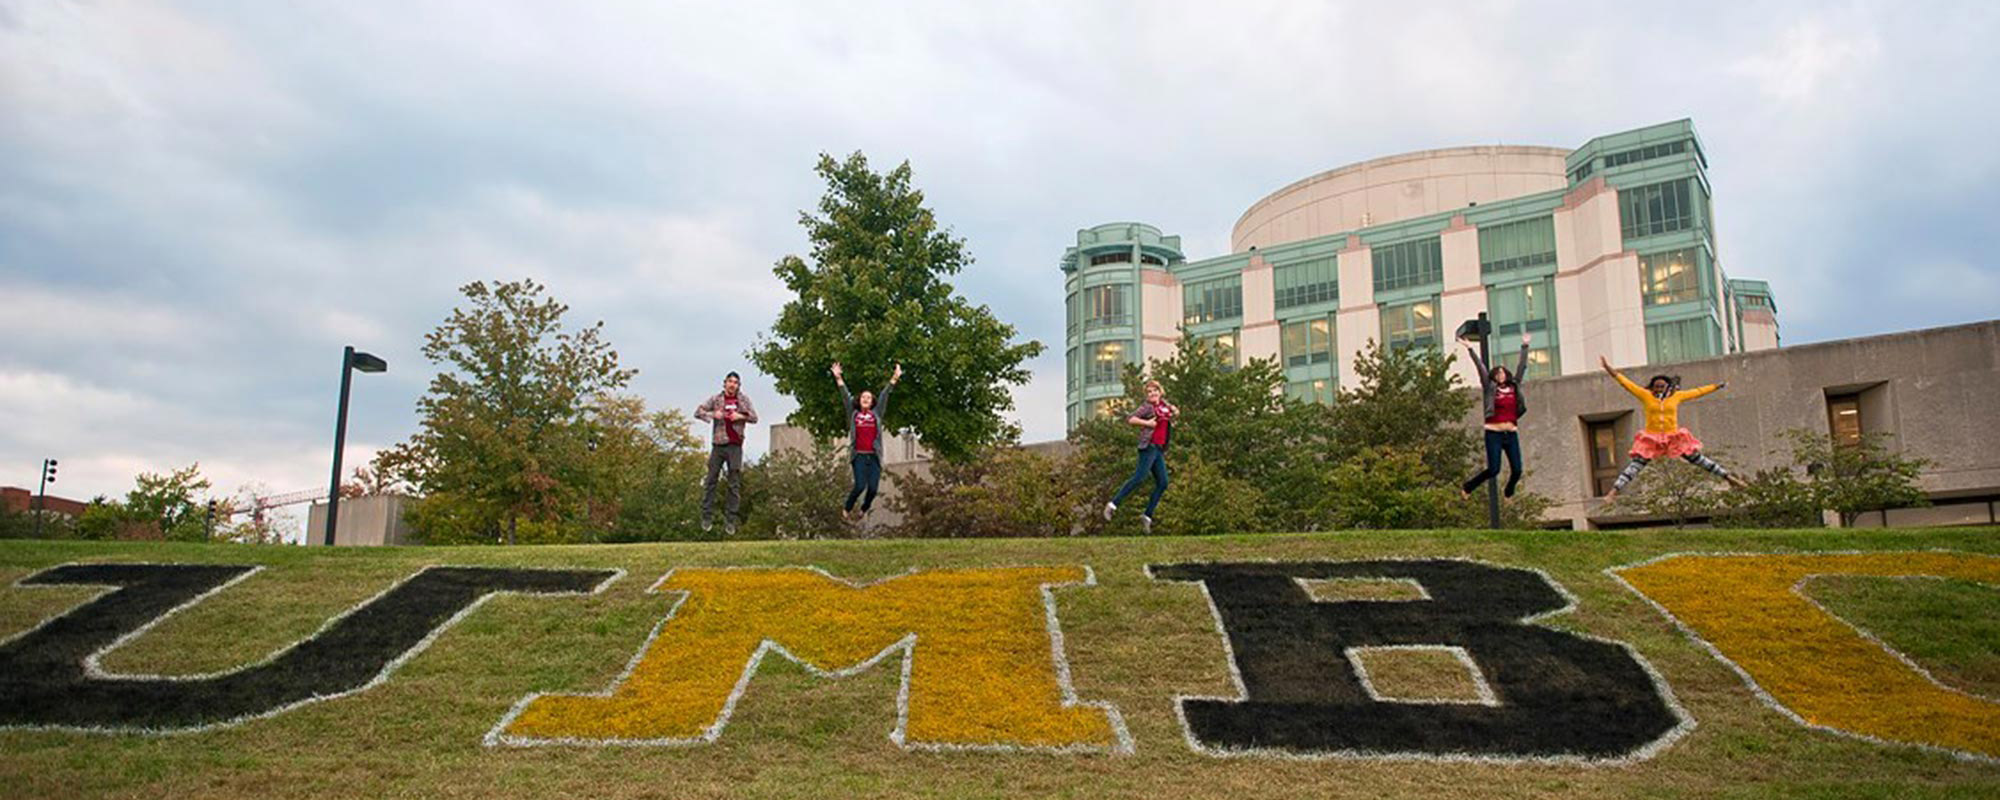 Fall 2016 | UMBC Admissions Counselors' Blog